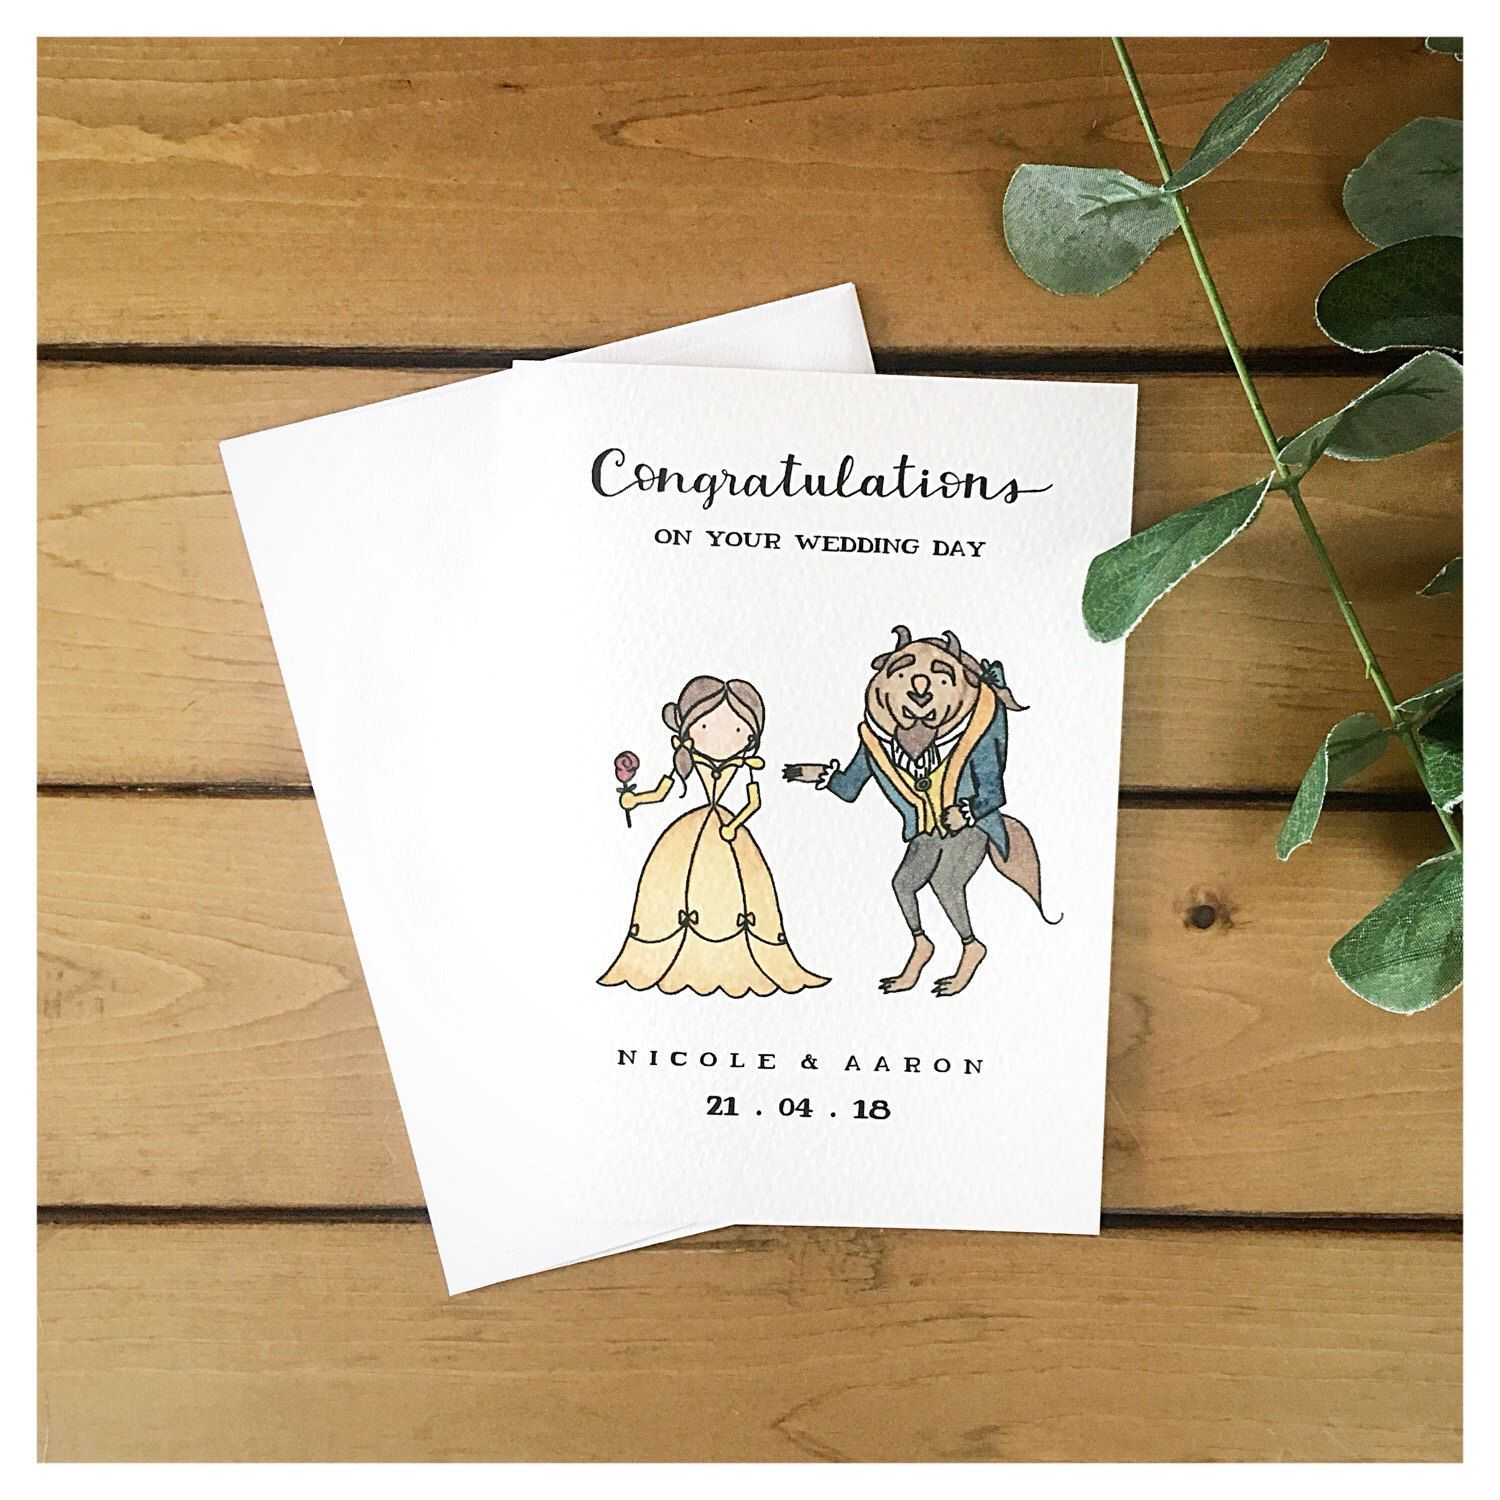 Beauty And The Beast Themed Custom Wedding Anniversary Card Custom Wedding Cards Birthday Cards For Mum Diy Birthday Gifts For Dad